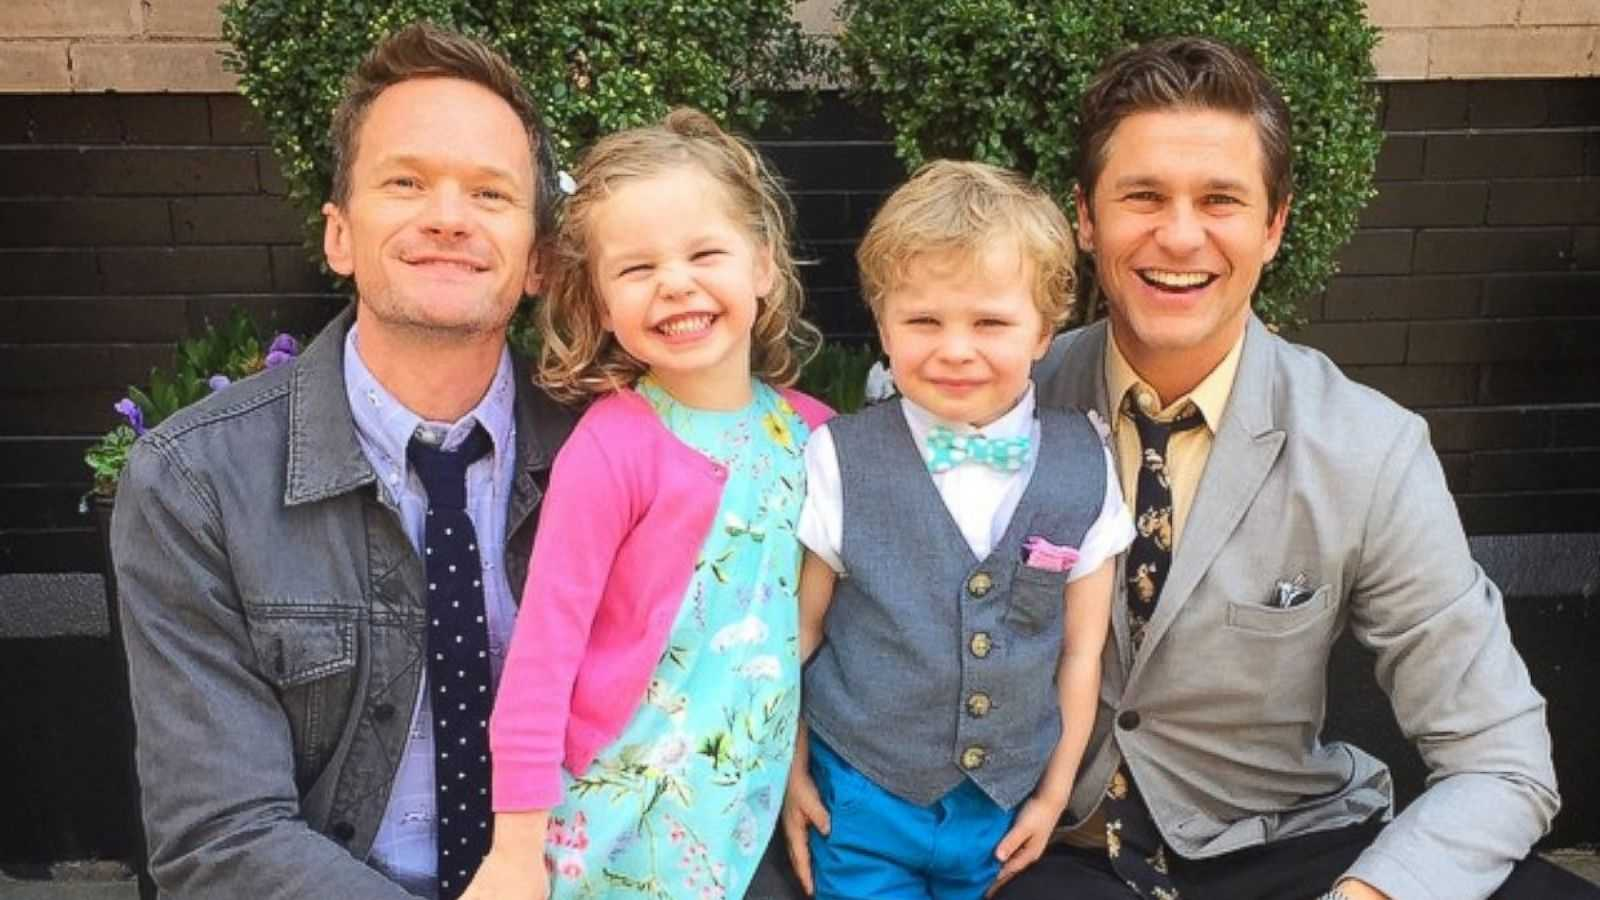 Neil Patrick-Harris is one of the most famous gay actors, with a handsome husband and adorable twin children